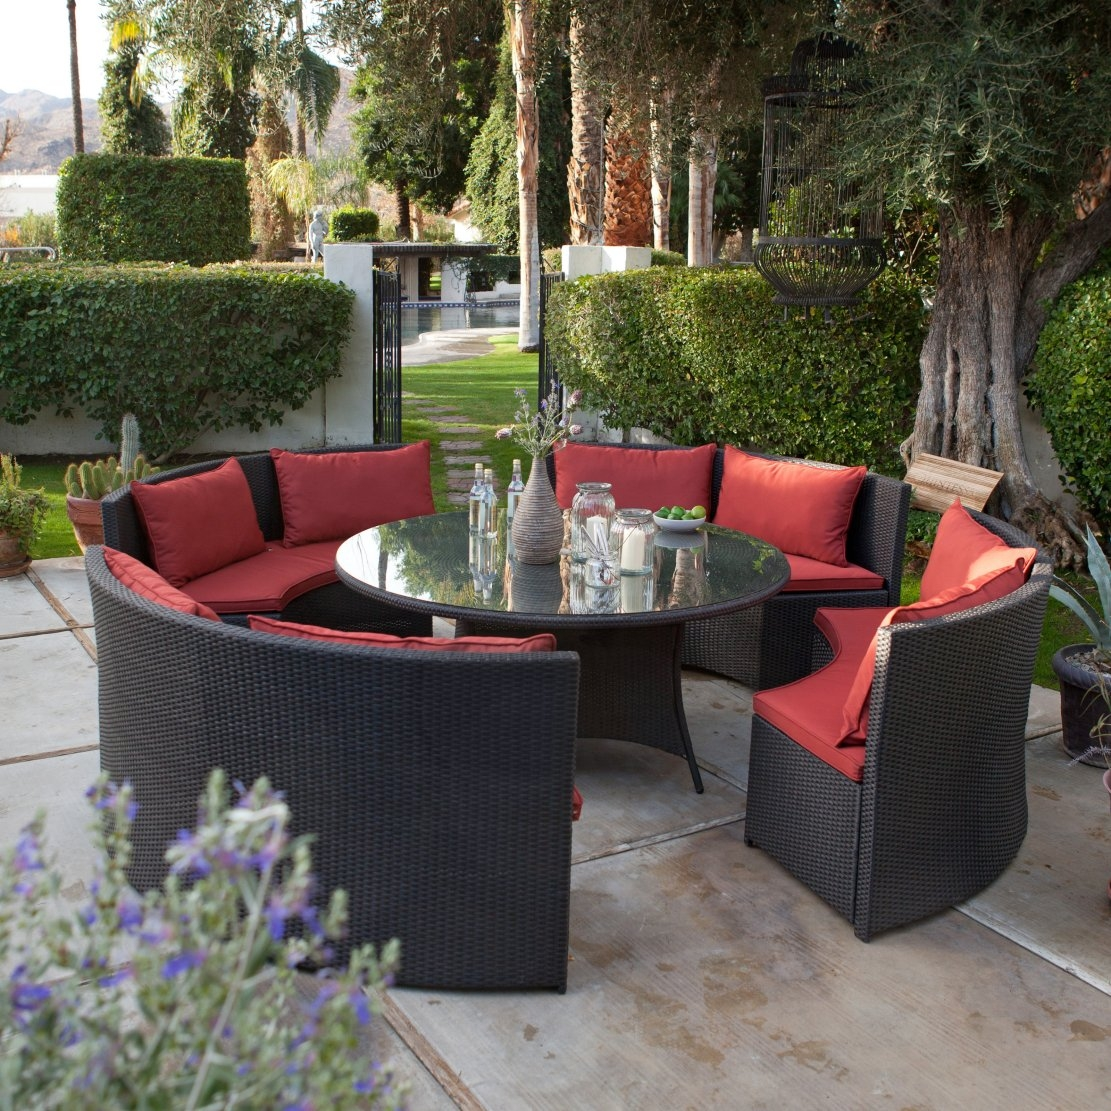 Modern 8-Seat Wicker Resin Patio Dining Set with Red Cushions, MWPD2499 :  Mix up some mojitos or a refreshing pitcher of lemonade, grab some friends, and prepare yourself for a night of fun and relaxation around this Modern 8-Seat Wicker Resin Patio Dining Set with Red Cushions- Seats 8. This head-turning contemporary set centers around a round dining table constructed of a lightweight frame of rust-proof aluminum with PVC-board top, and an all-weather wicker exterior with glass top. It's perfect for meals or informal get-togethers. As for seating, four cushioned benches offer a comfortable spot for eight people. Each bench is one quarter of a full circle, creating a round seating area that specializes in bringing people together. Each bench has a corrosion-resistant aluminum frame that's covered in all-weather wicker, and a set of matching Sunbrella cushions in choice of colors that will add the comfort you need outdoors. Aluminum frame with PVC board top for extra stability; Umbrella hole for optional added shade.